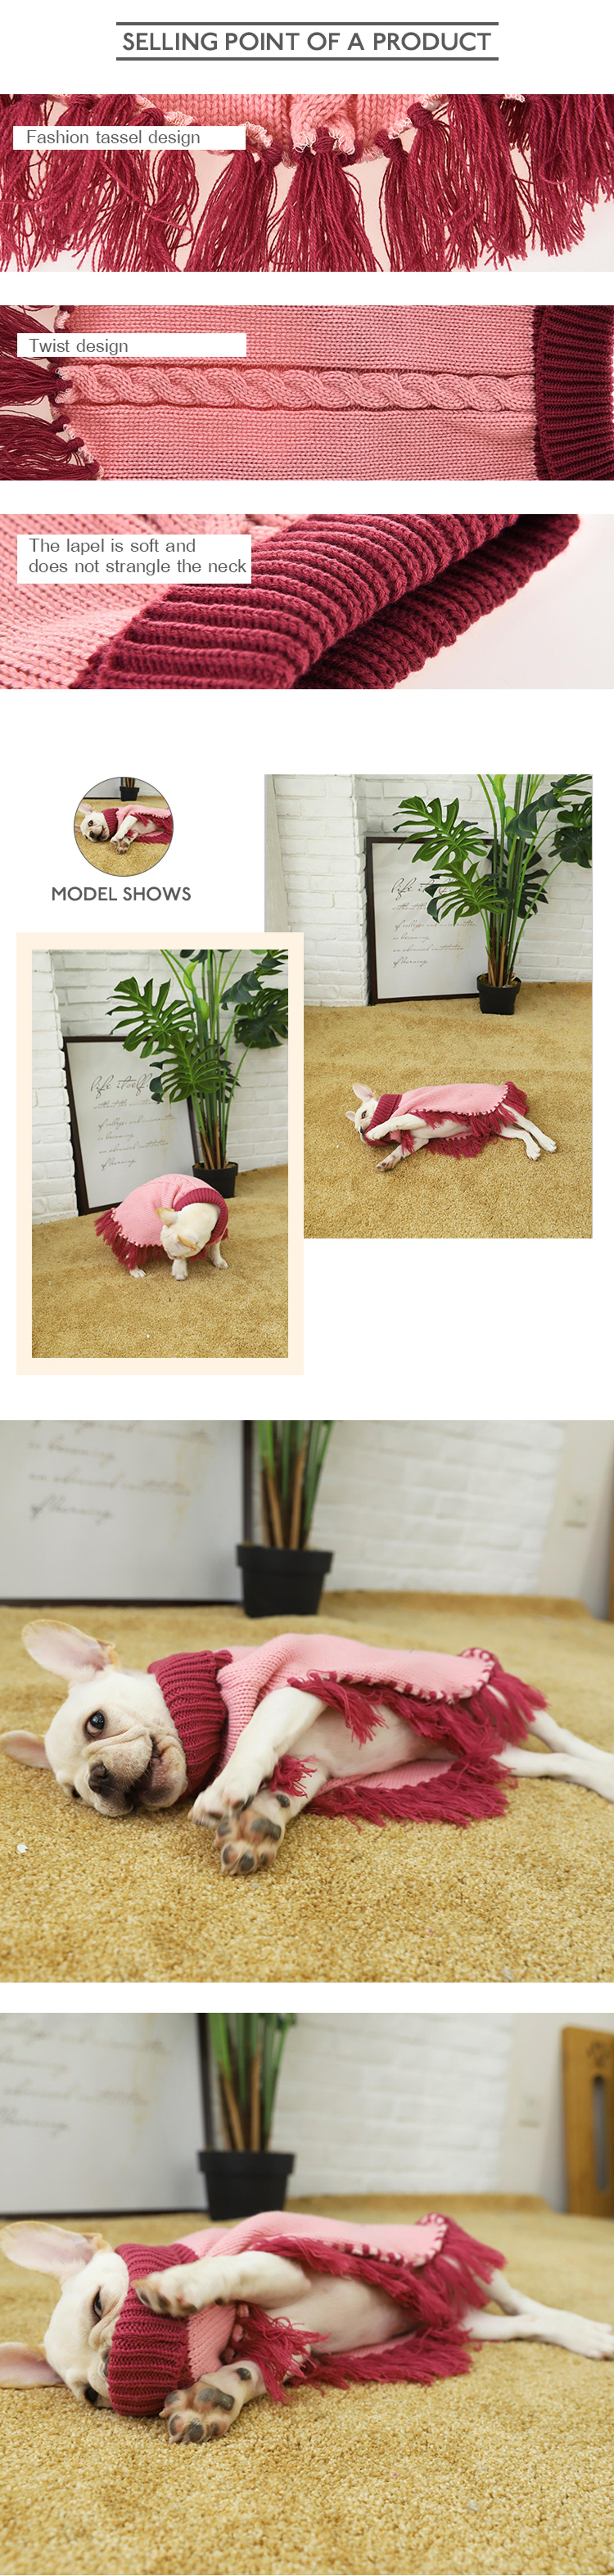 Tianyuan Pink Coat Sweater Cloth For Dog,Pet Dog Sweater For Reseller